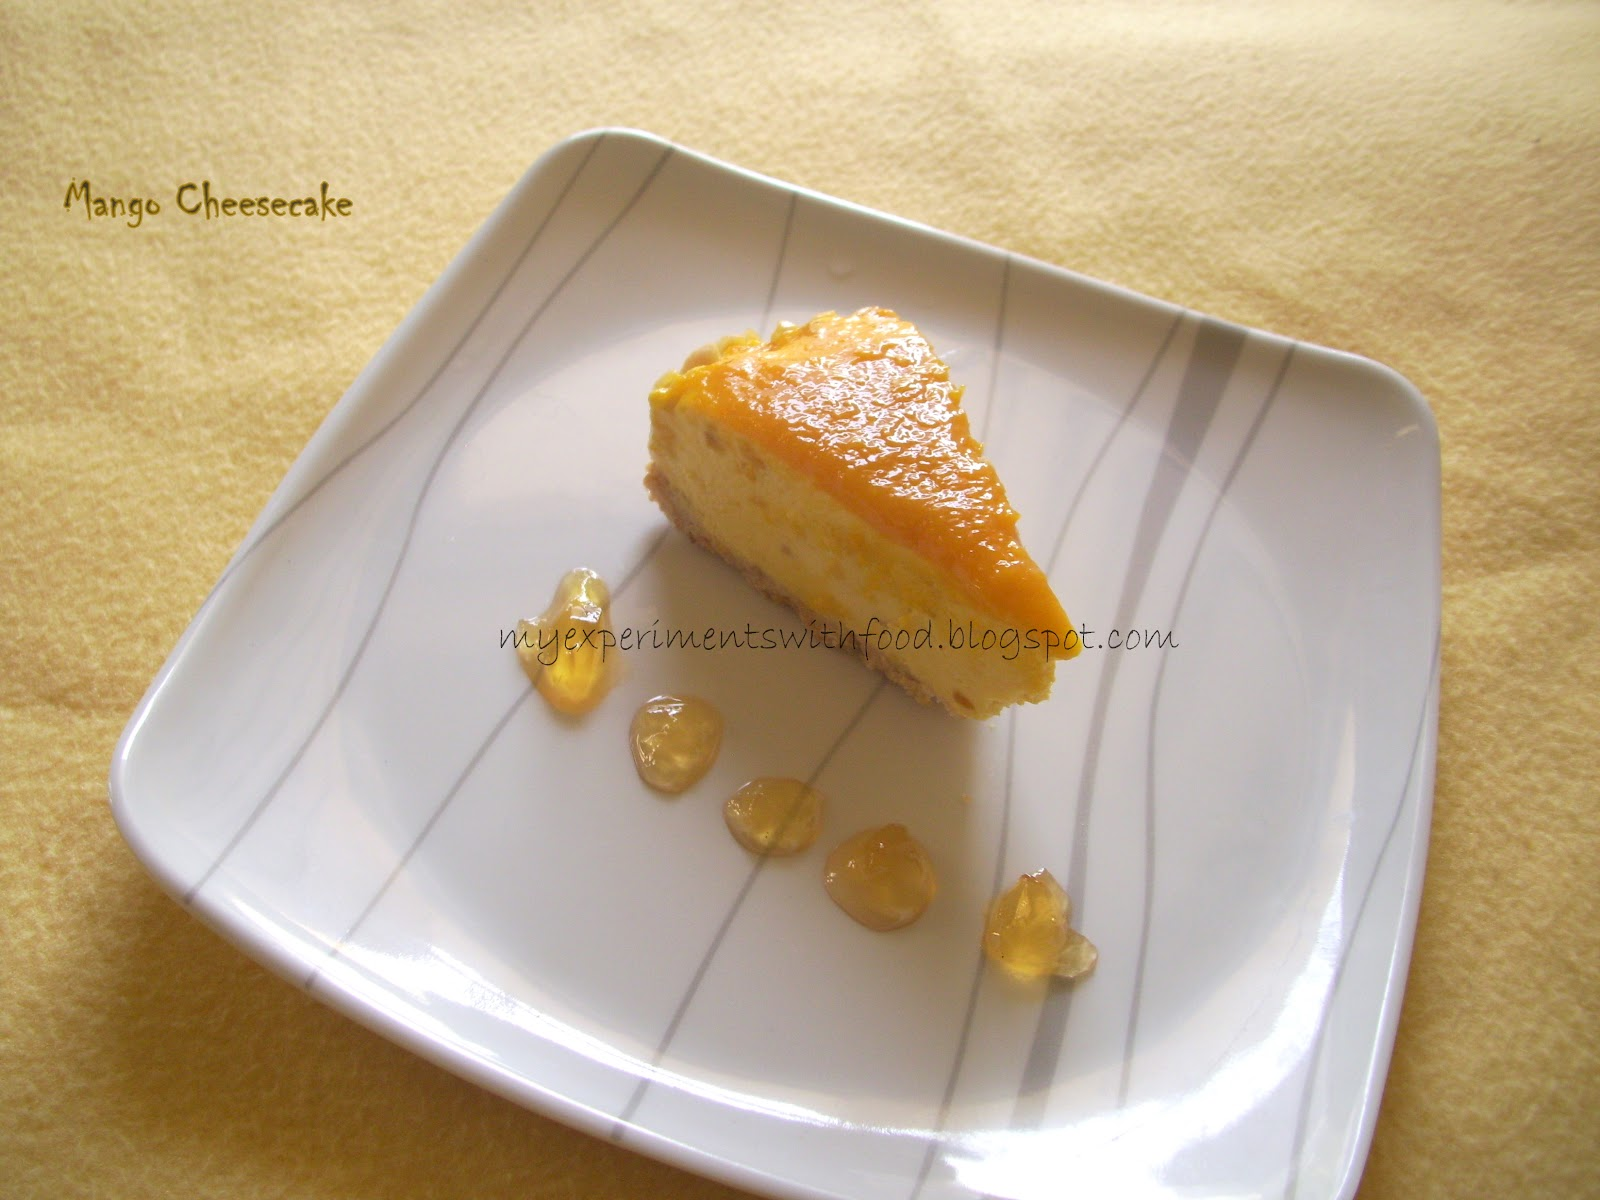 how to cut mango for cheesecake